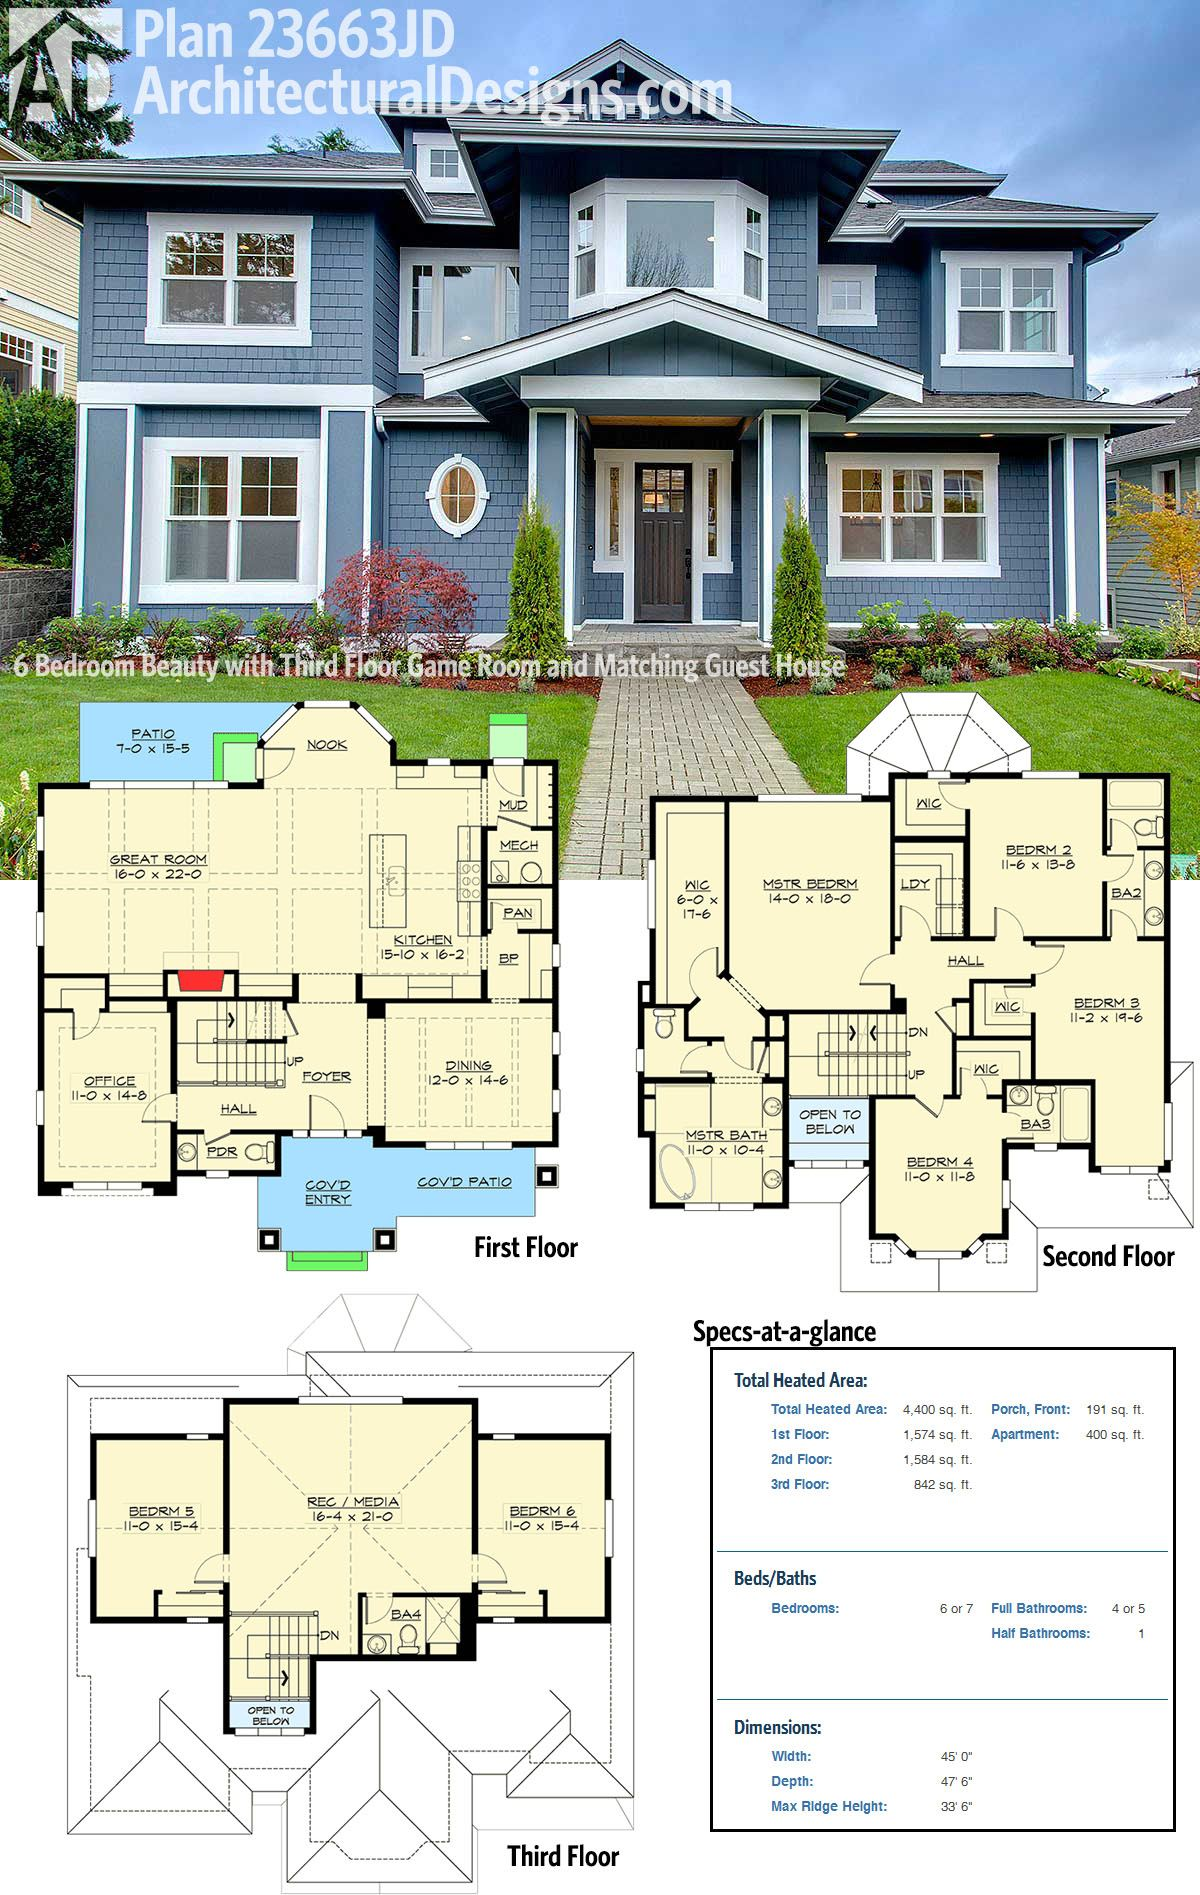 Plan 23663jd 6 bedroom beauty with third floor game room for Guest house floor plan